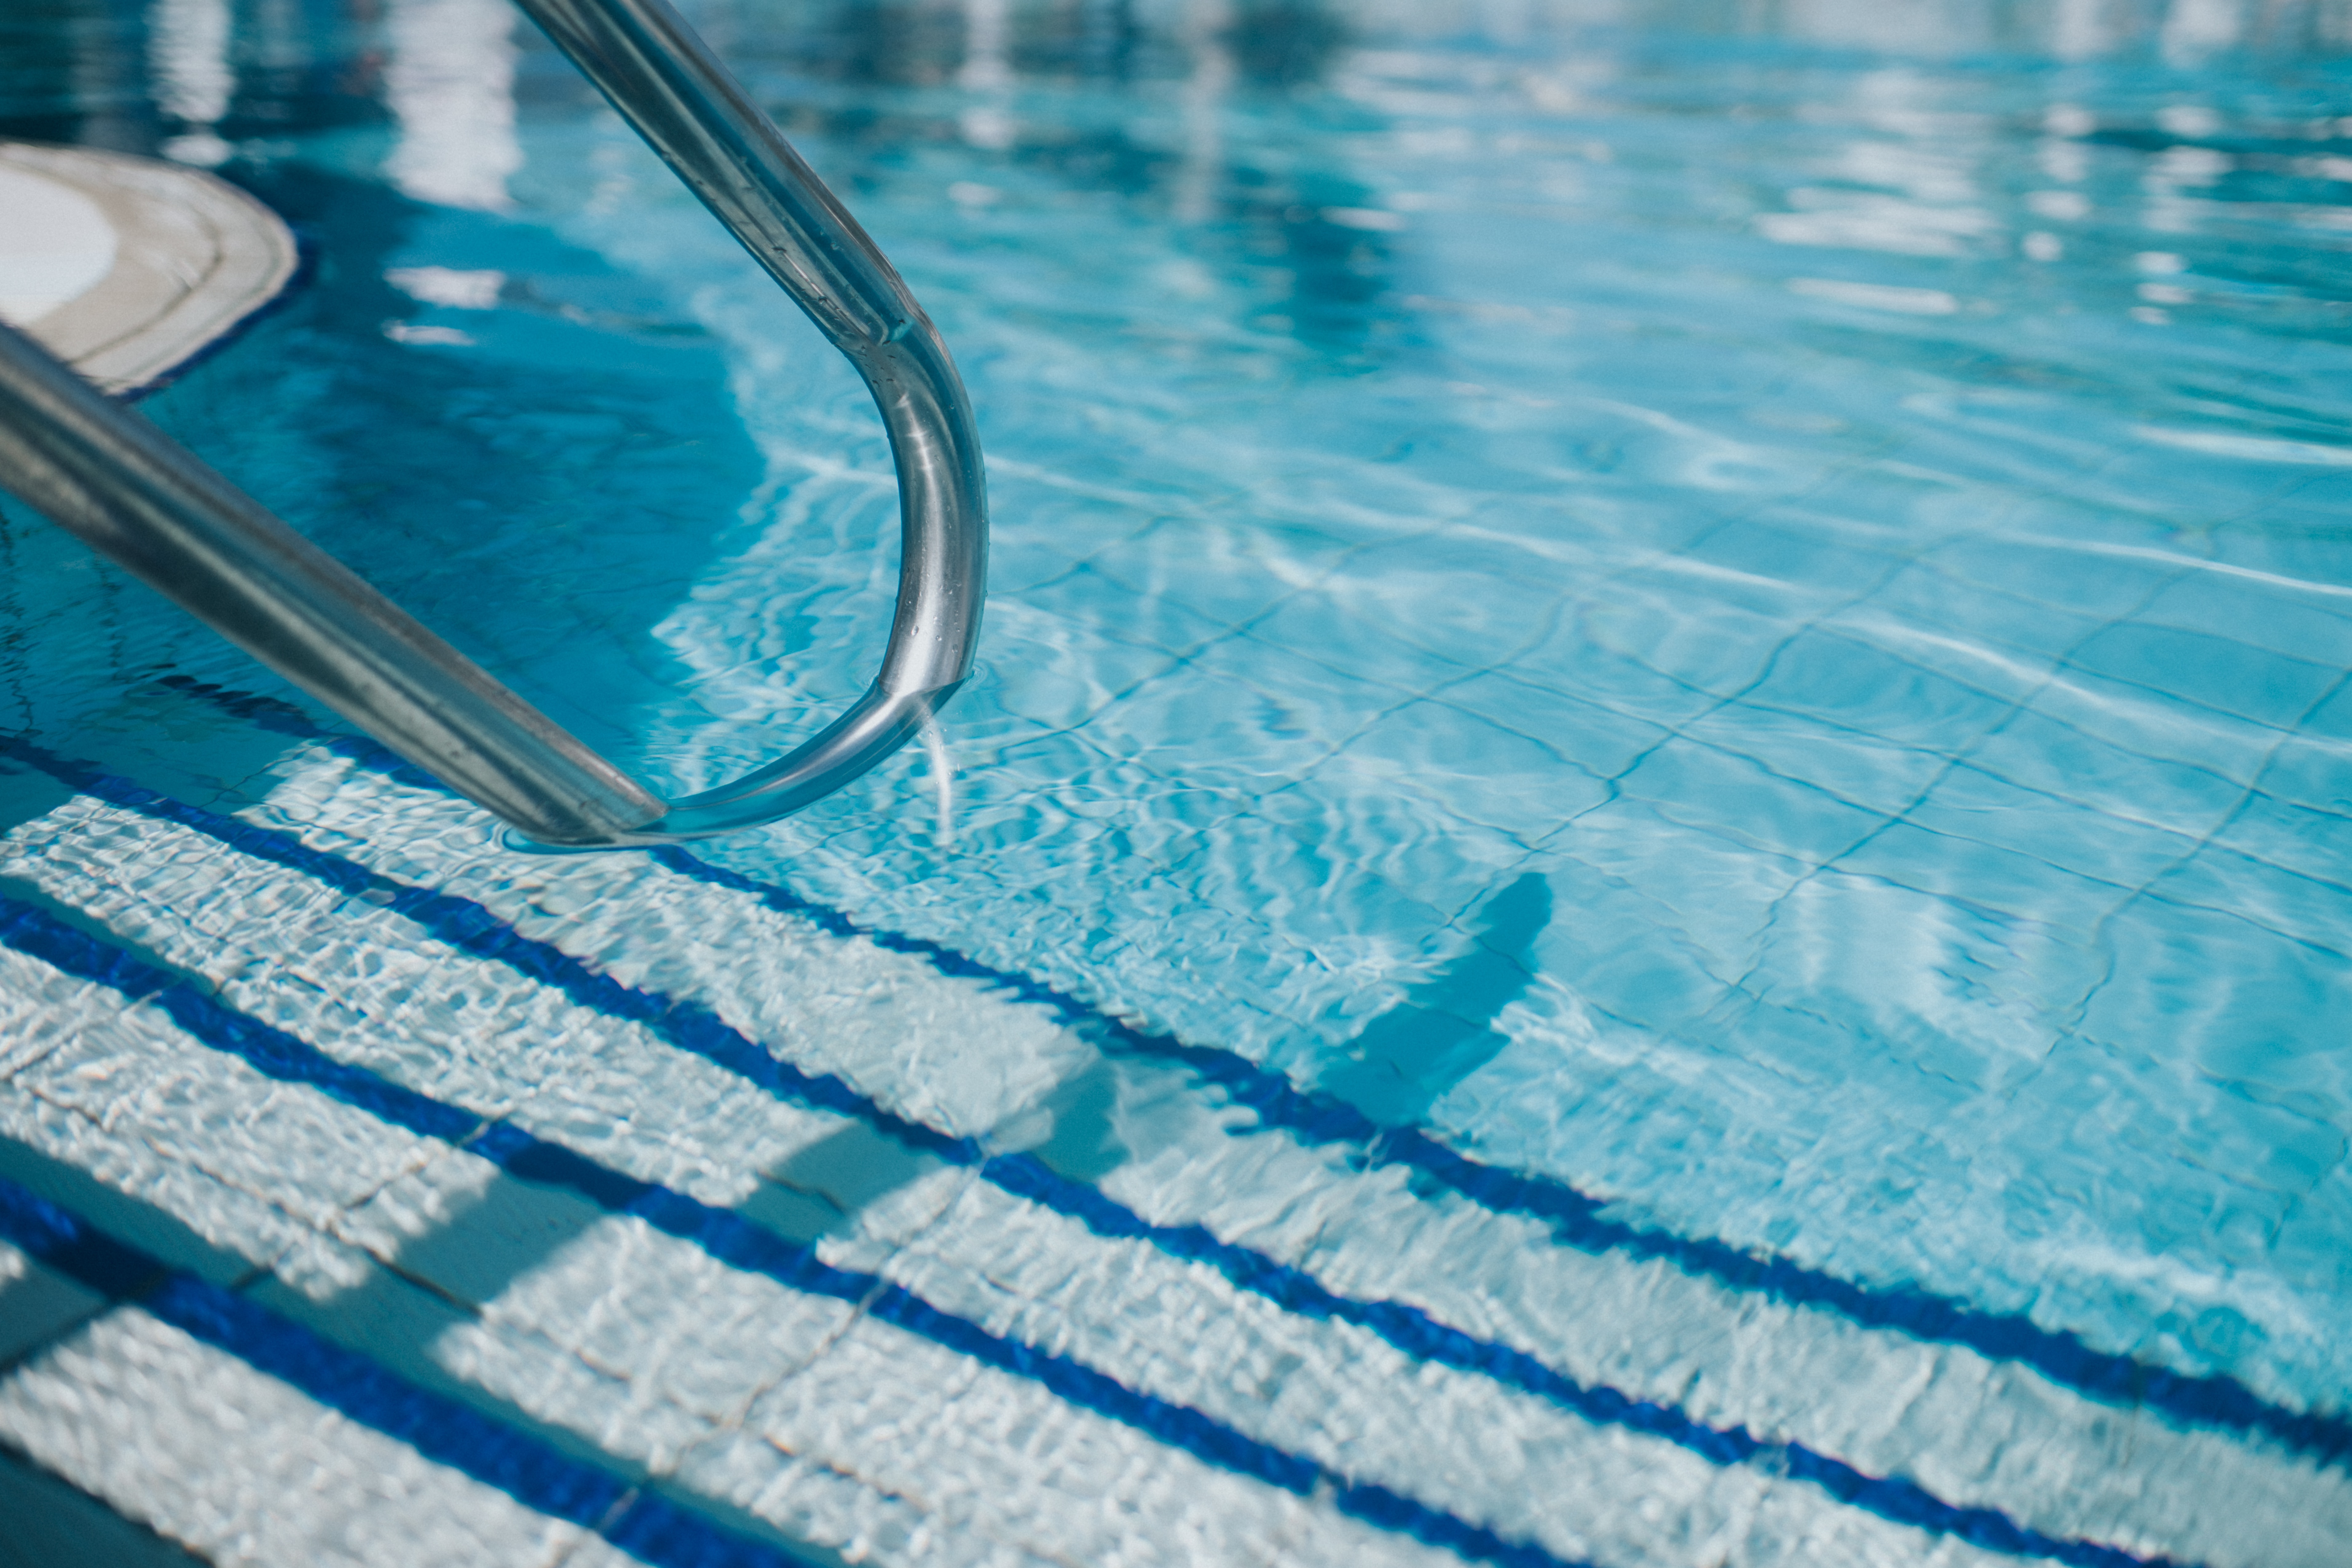 Is Chlorine Bad For Piercings? You May Want To Stay Out Of The Pool For A  Bit After Your Appointment